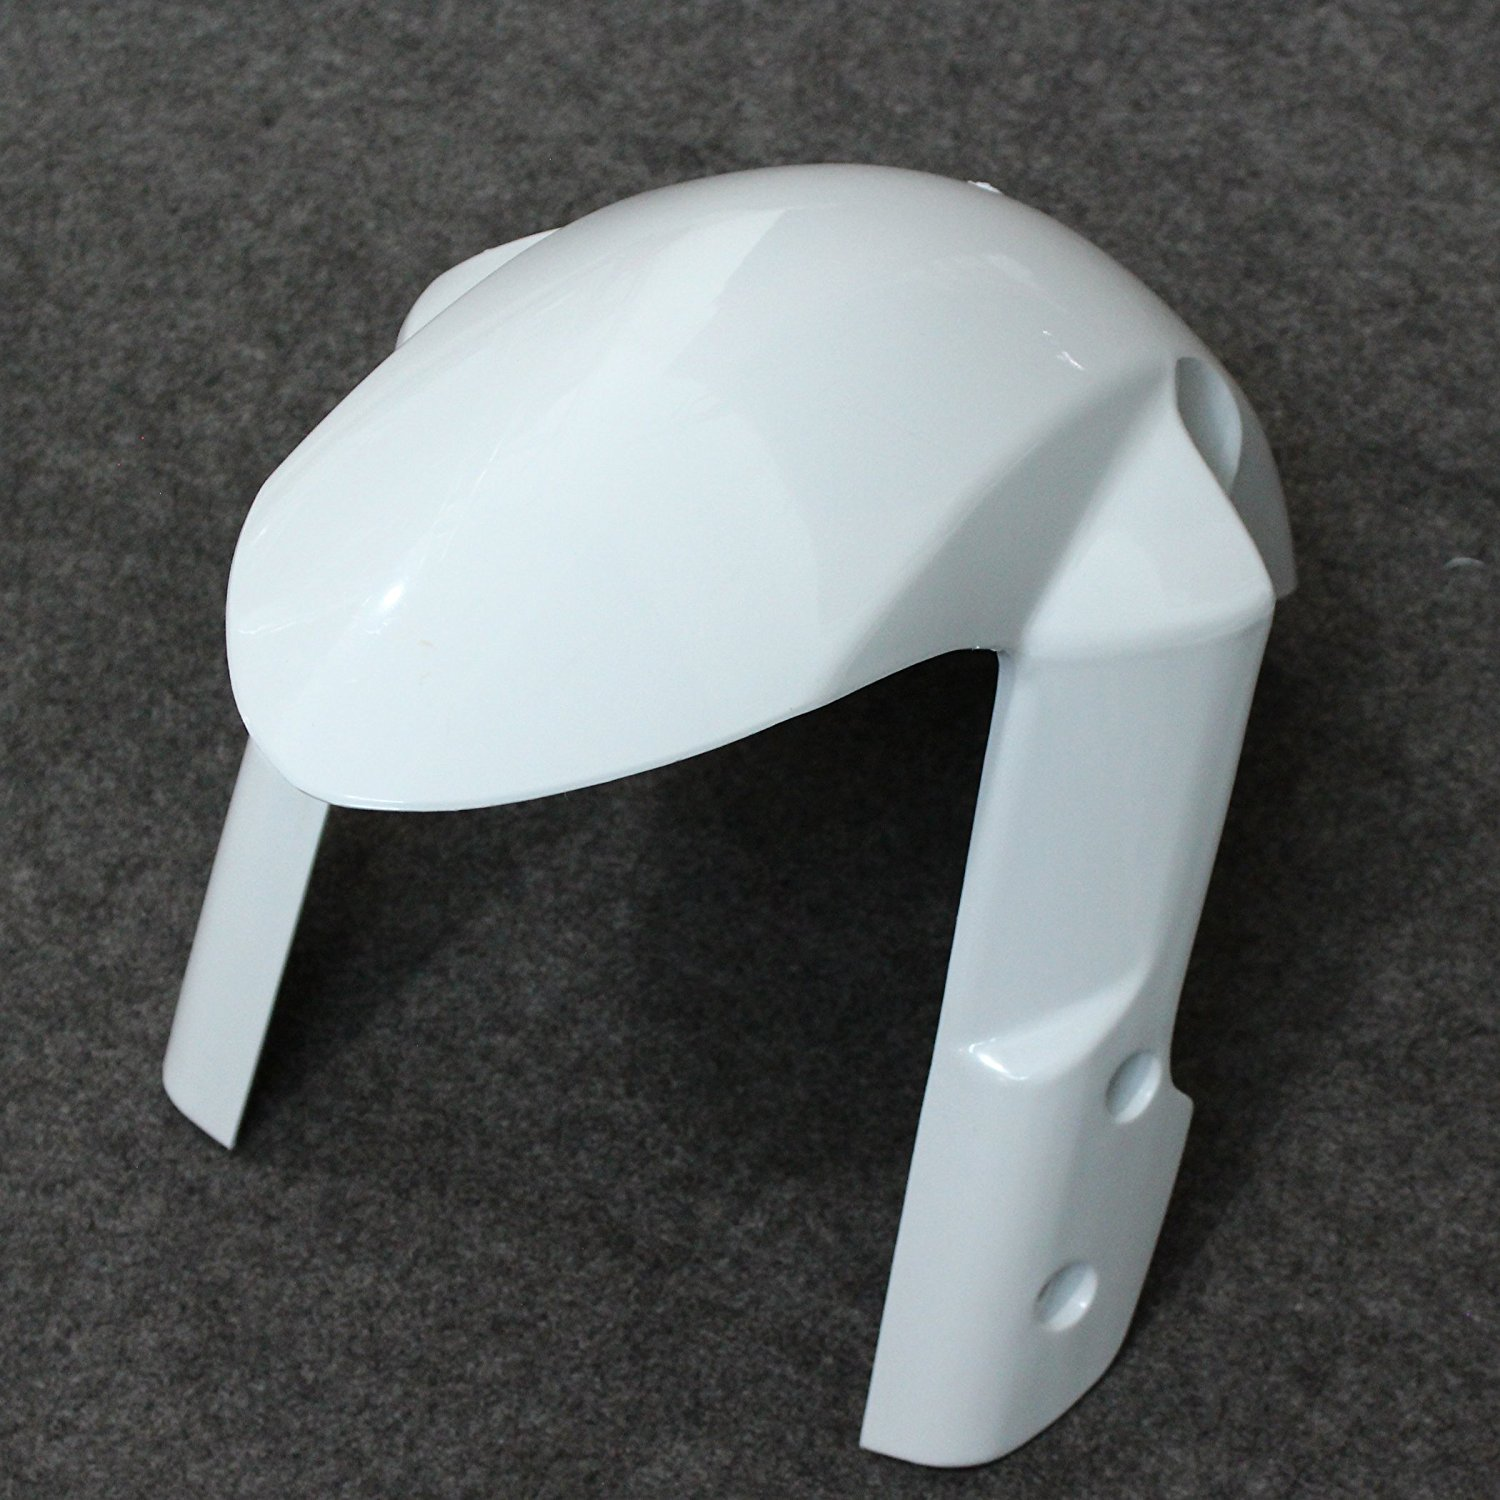 Motorcycle Unpainted Mudguard Front Fender For Suzuki GSXR1000 GSX R 1000 K7 2007   2008 Mud Guard Fairing Cowl Cover Injection-in Covers & Ornamental Mouldings from Automobiles & Motorcycles    3